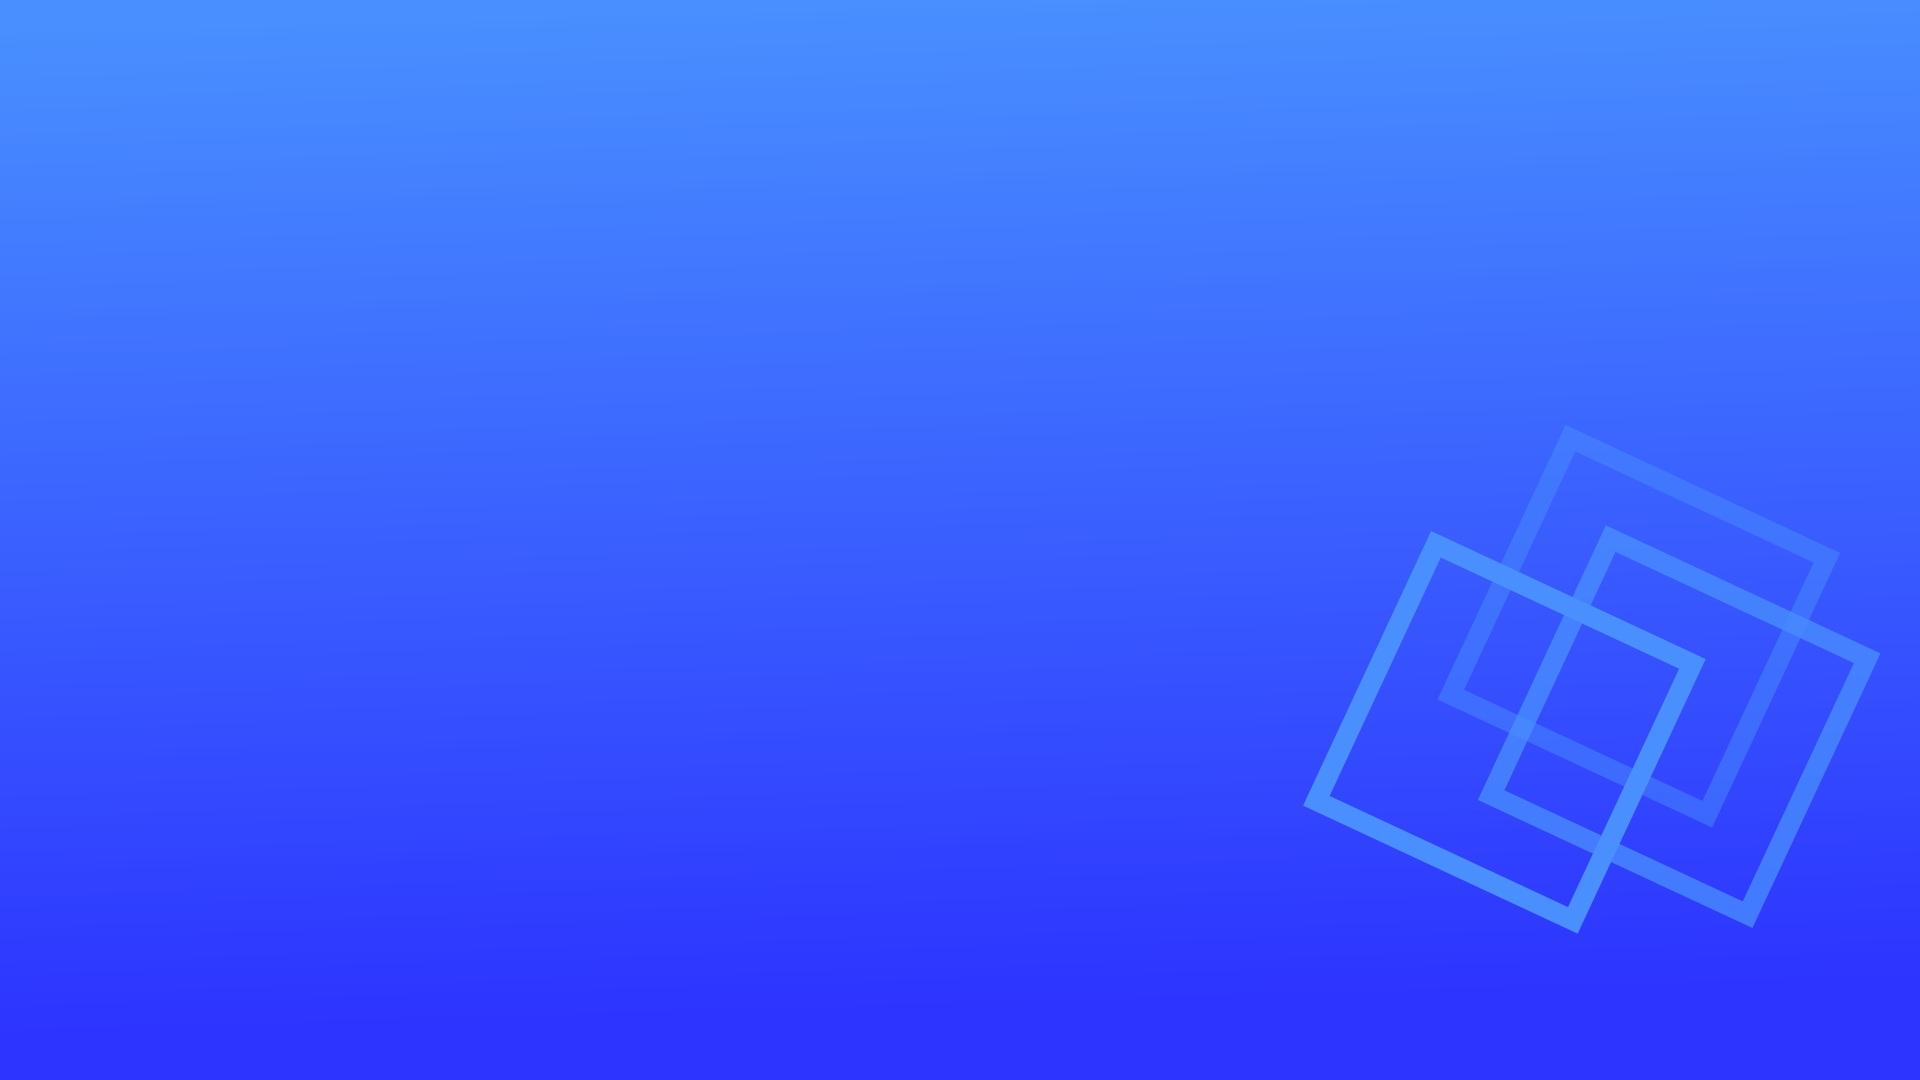 bluevmboxes_wallpaper_tilt